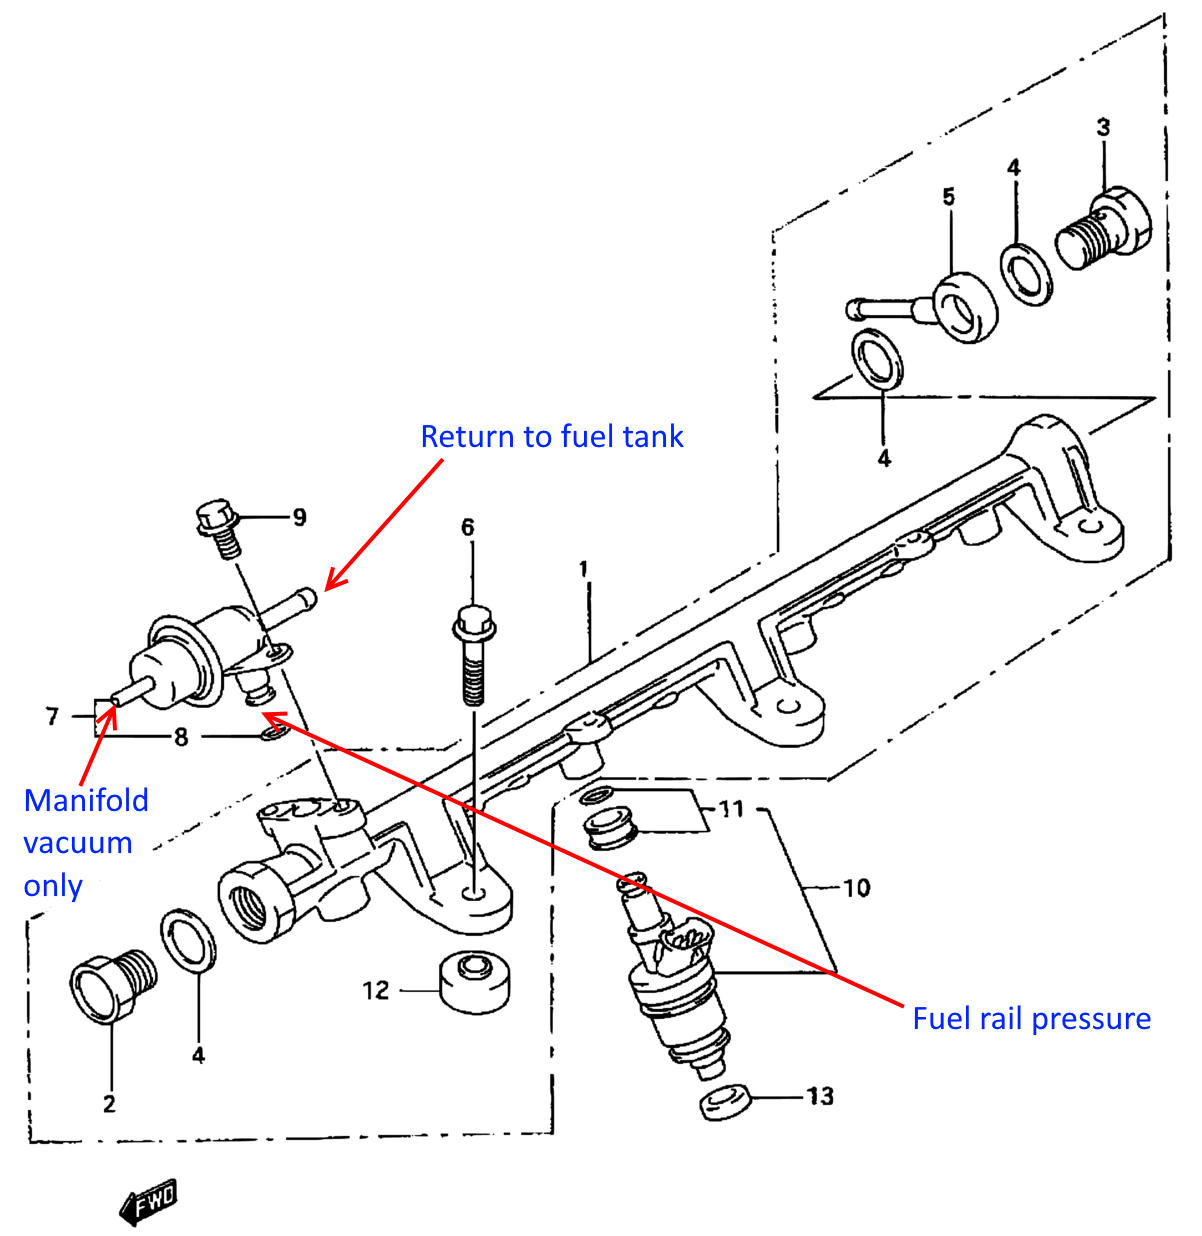 hight resolution of lincoln fuel pressure diagram wiring diagram page lincoln fuel pressure diagram